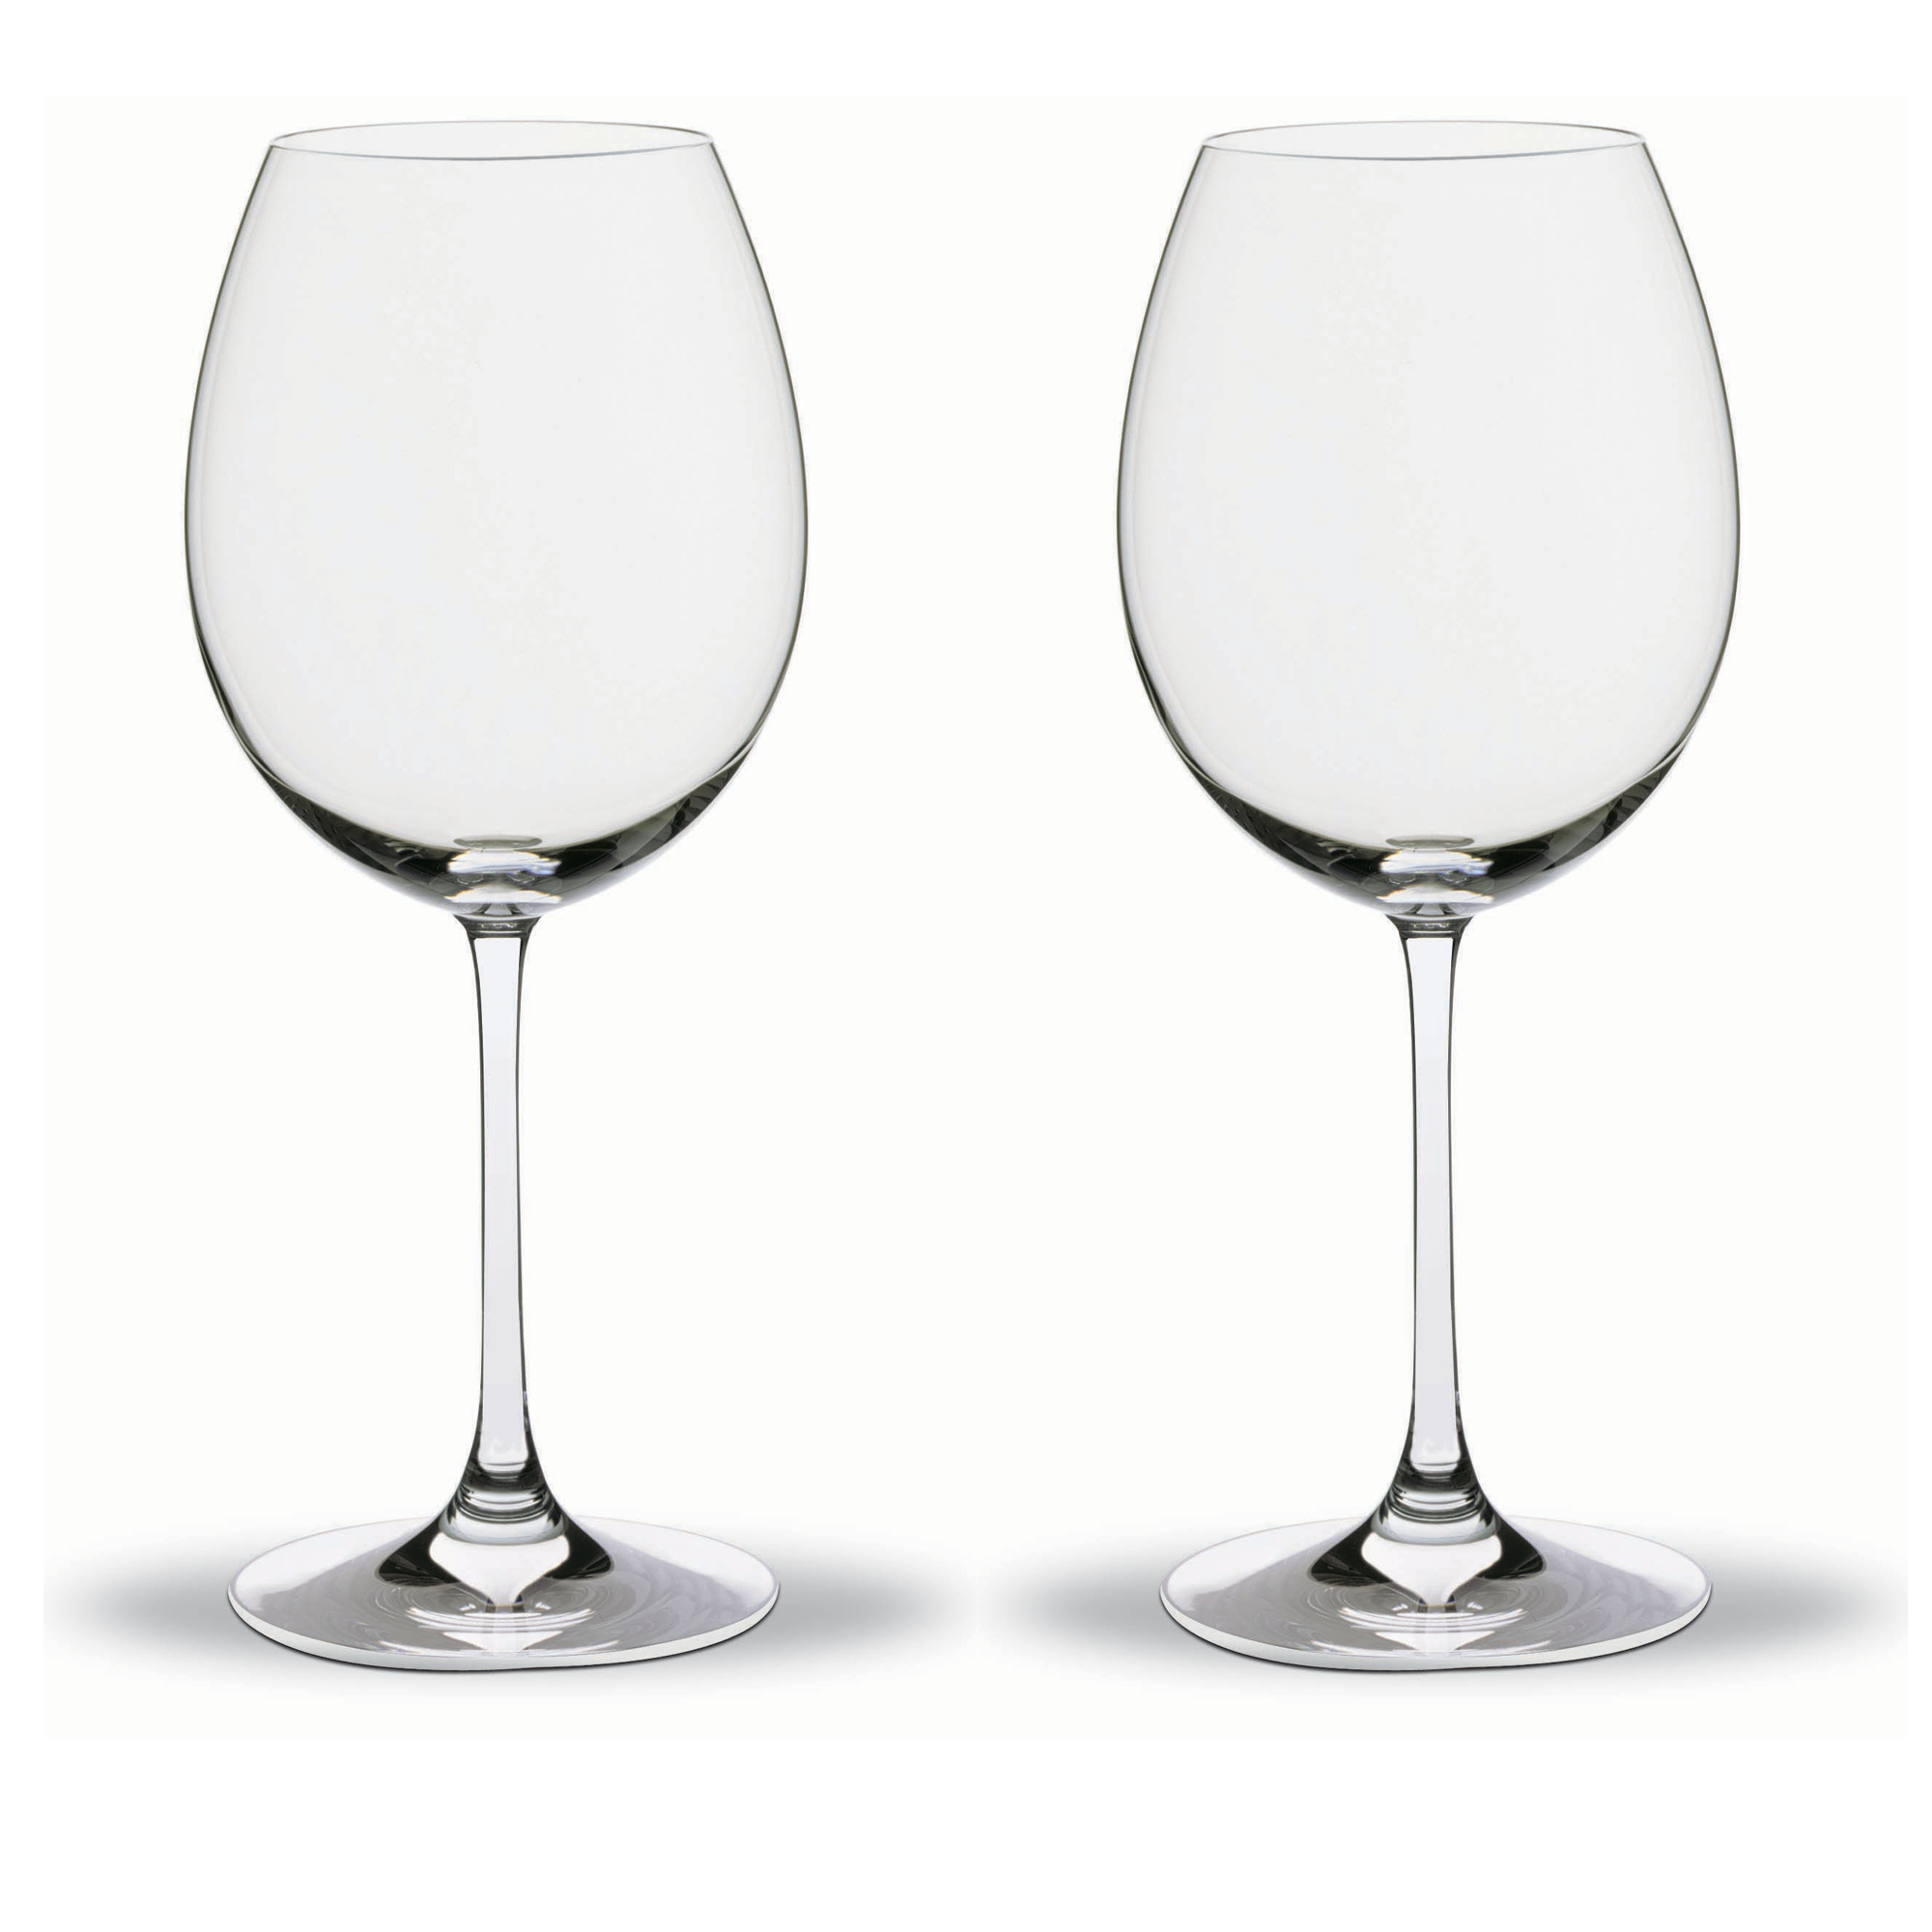 Baccarat Oenology Grand Bordeaux Glass, Boxed Set of 2